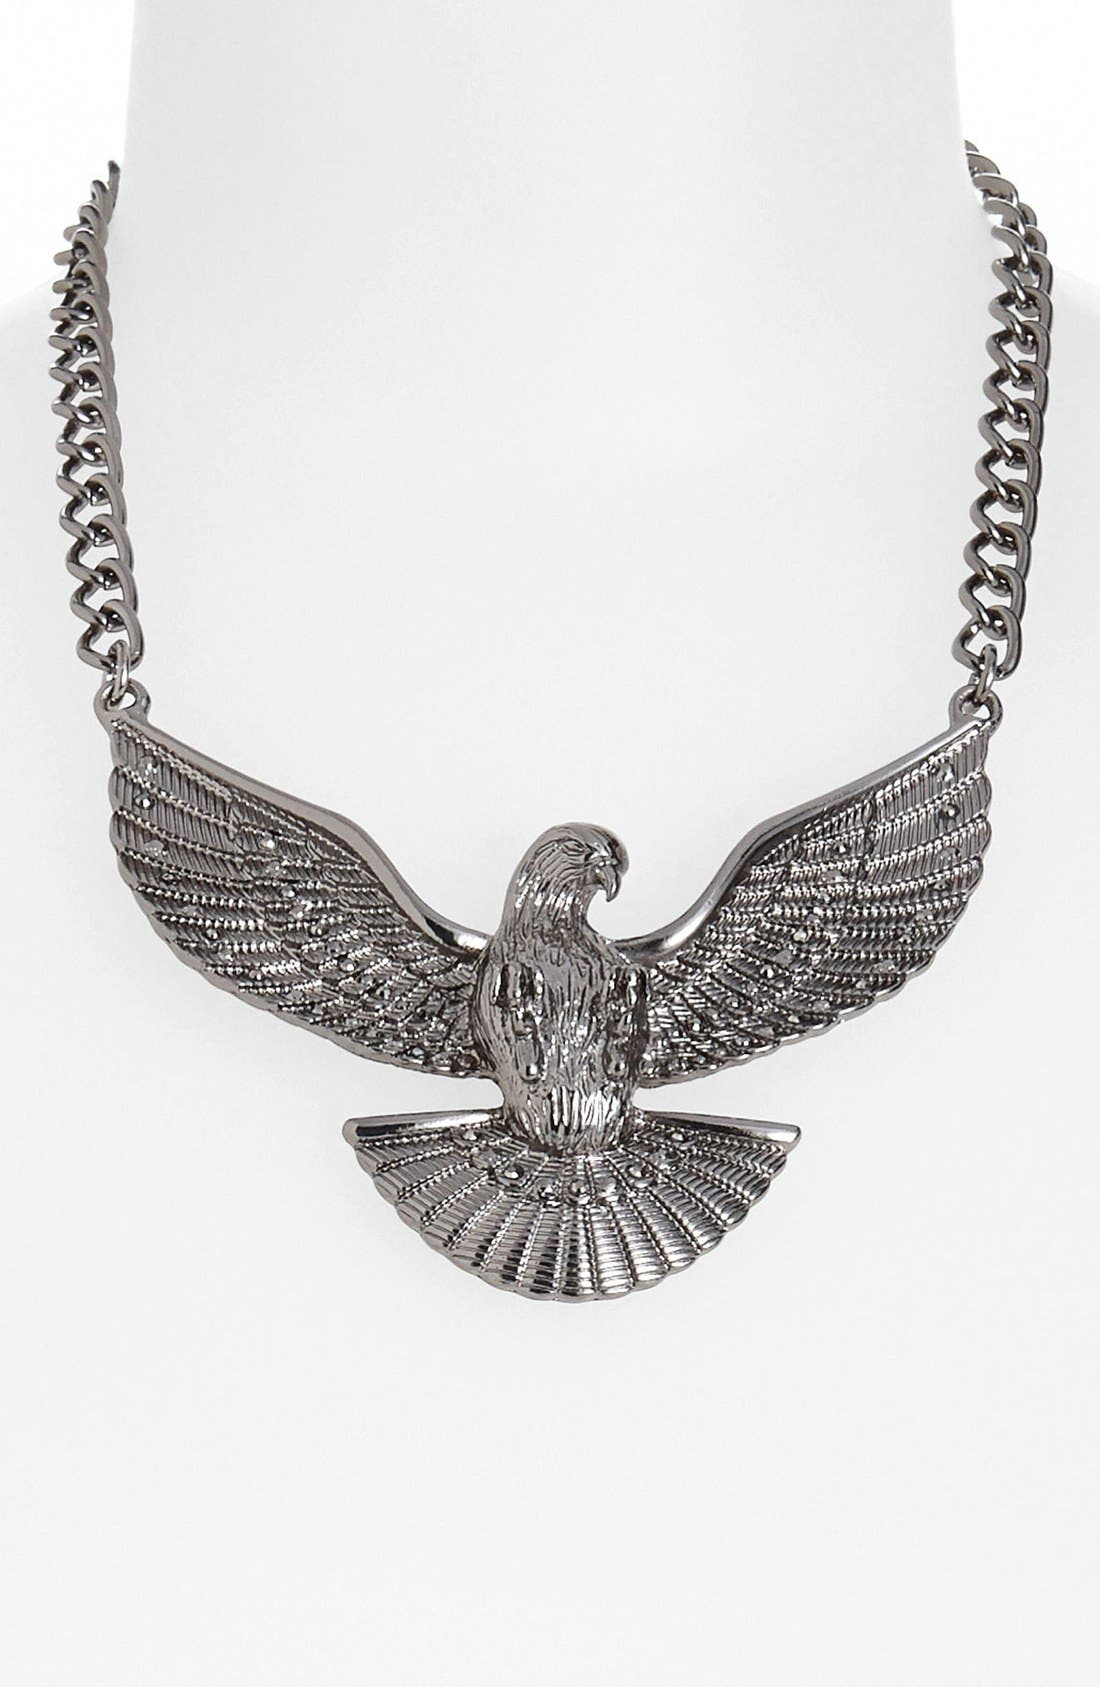 Alternate Image 1 Selected - Statements by DCK Eagle Statement Necklace